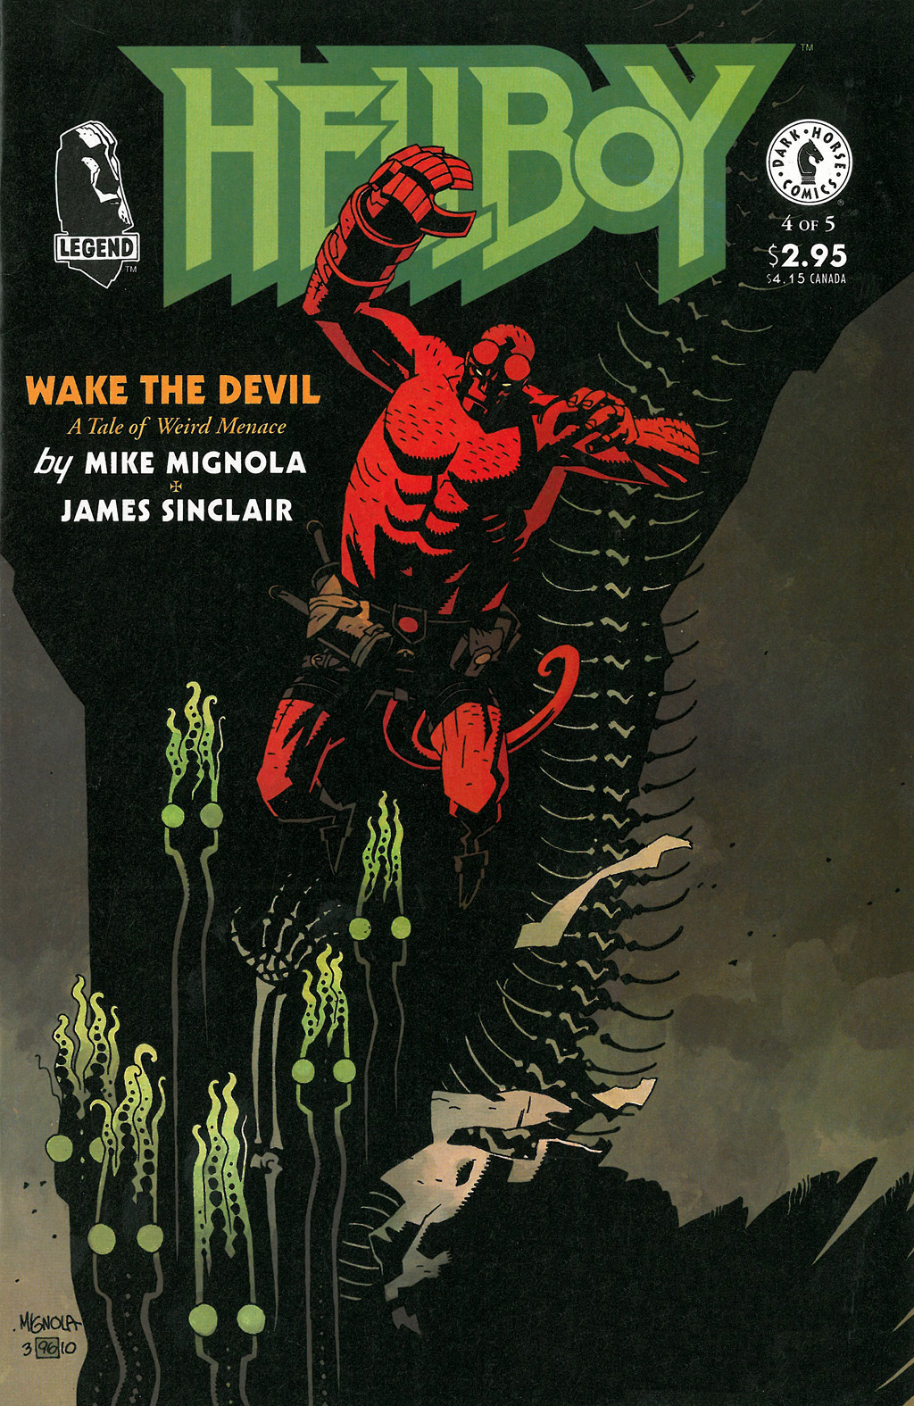 File:Wake the Devil 4.jpg